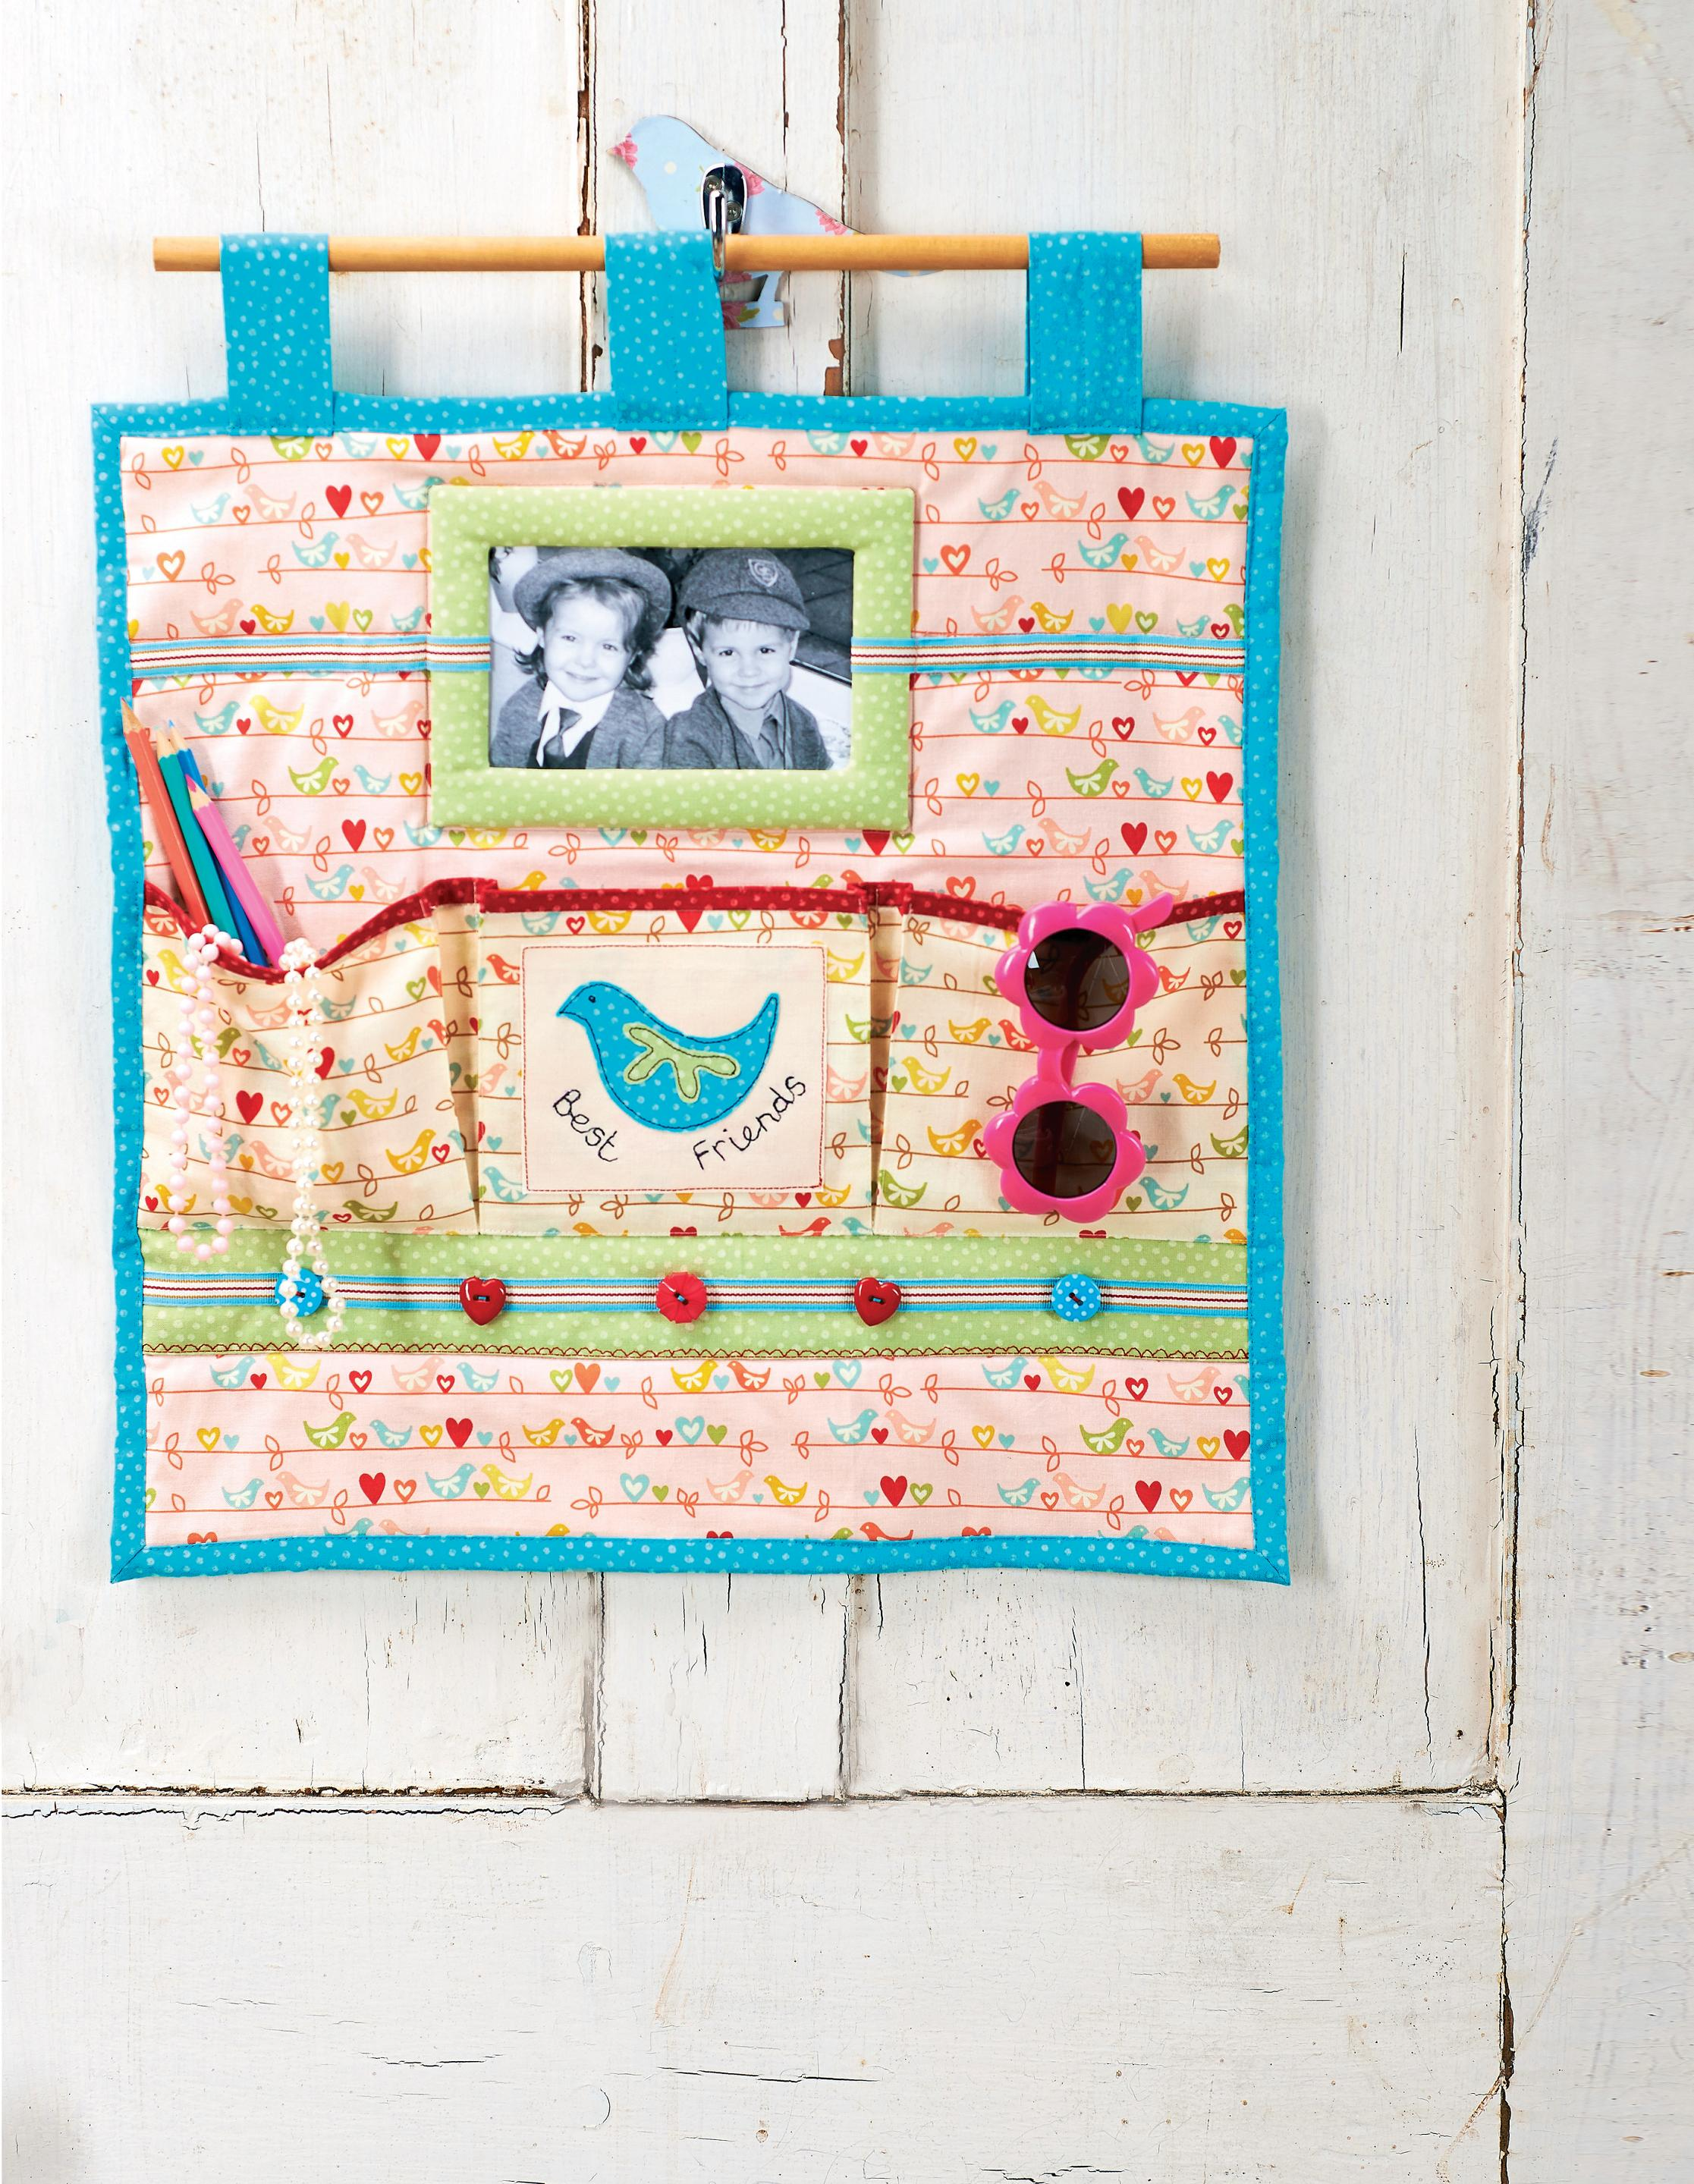 _Wall_Storage_1 Quilting Halloween Newsletter Templates Free on for school, girl scout, ms publisher, preschool monthly,